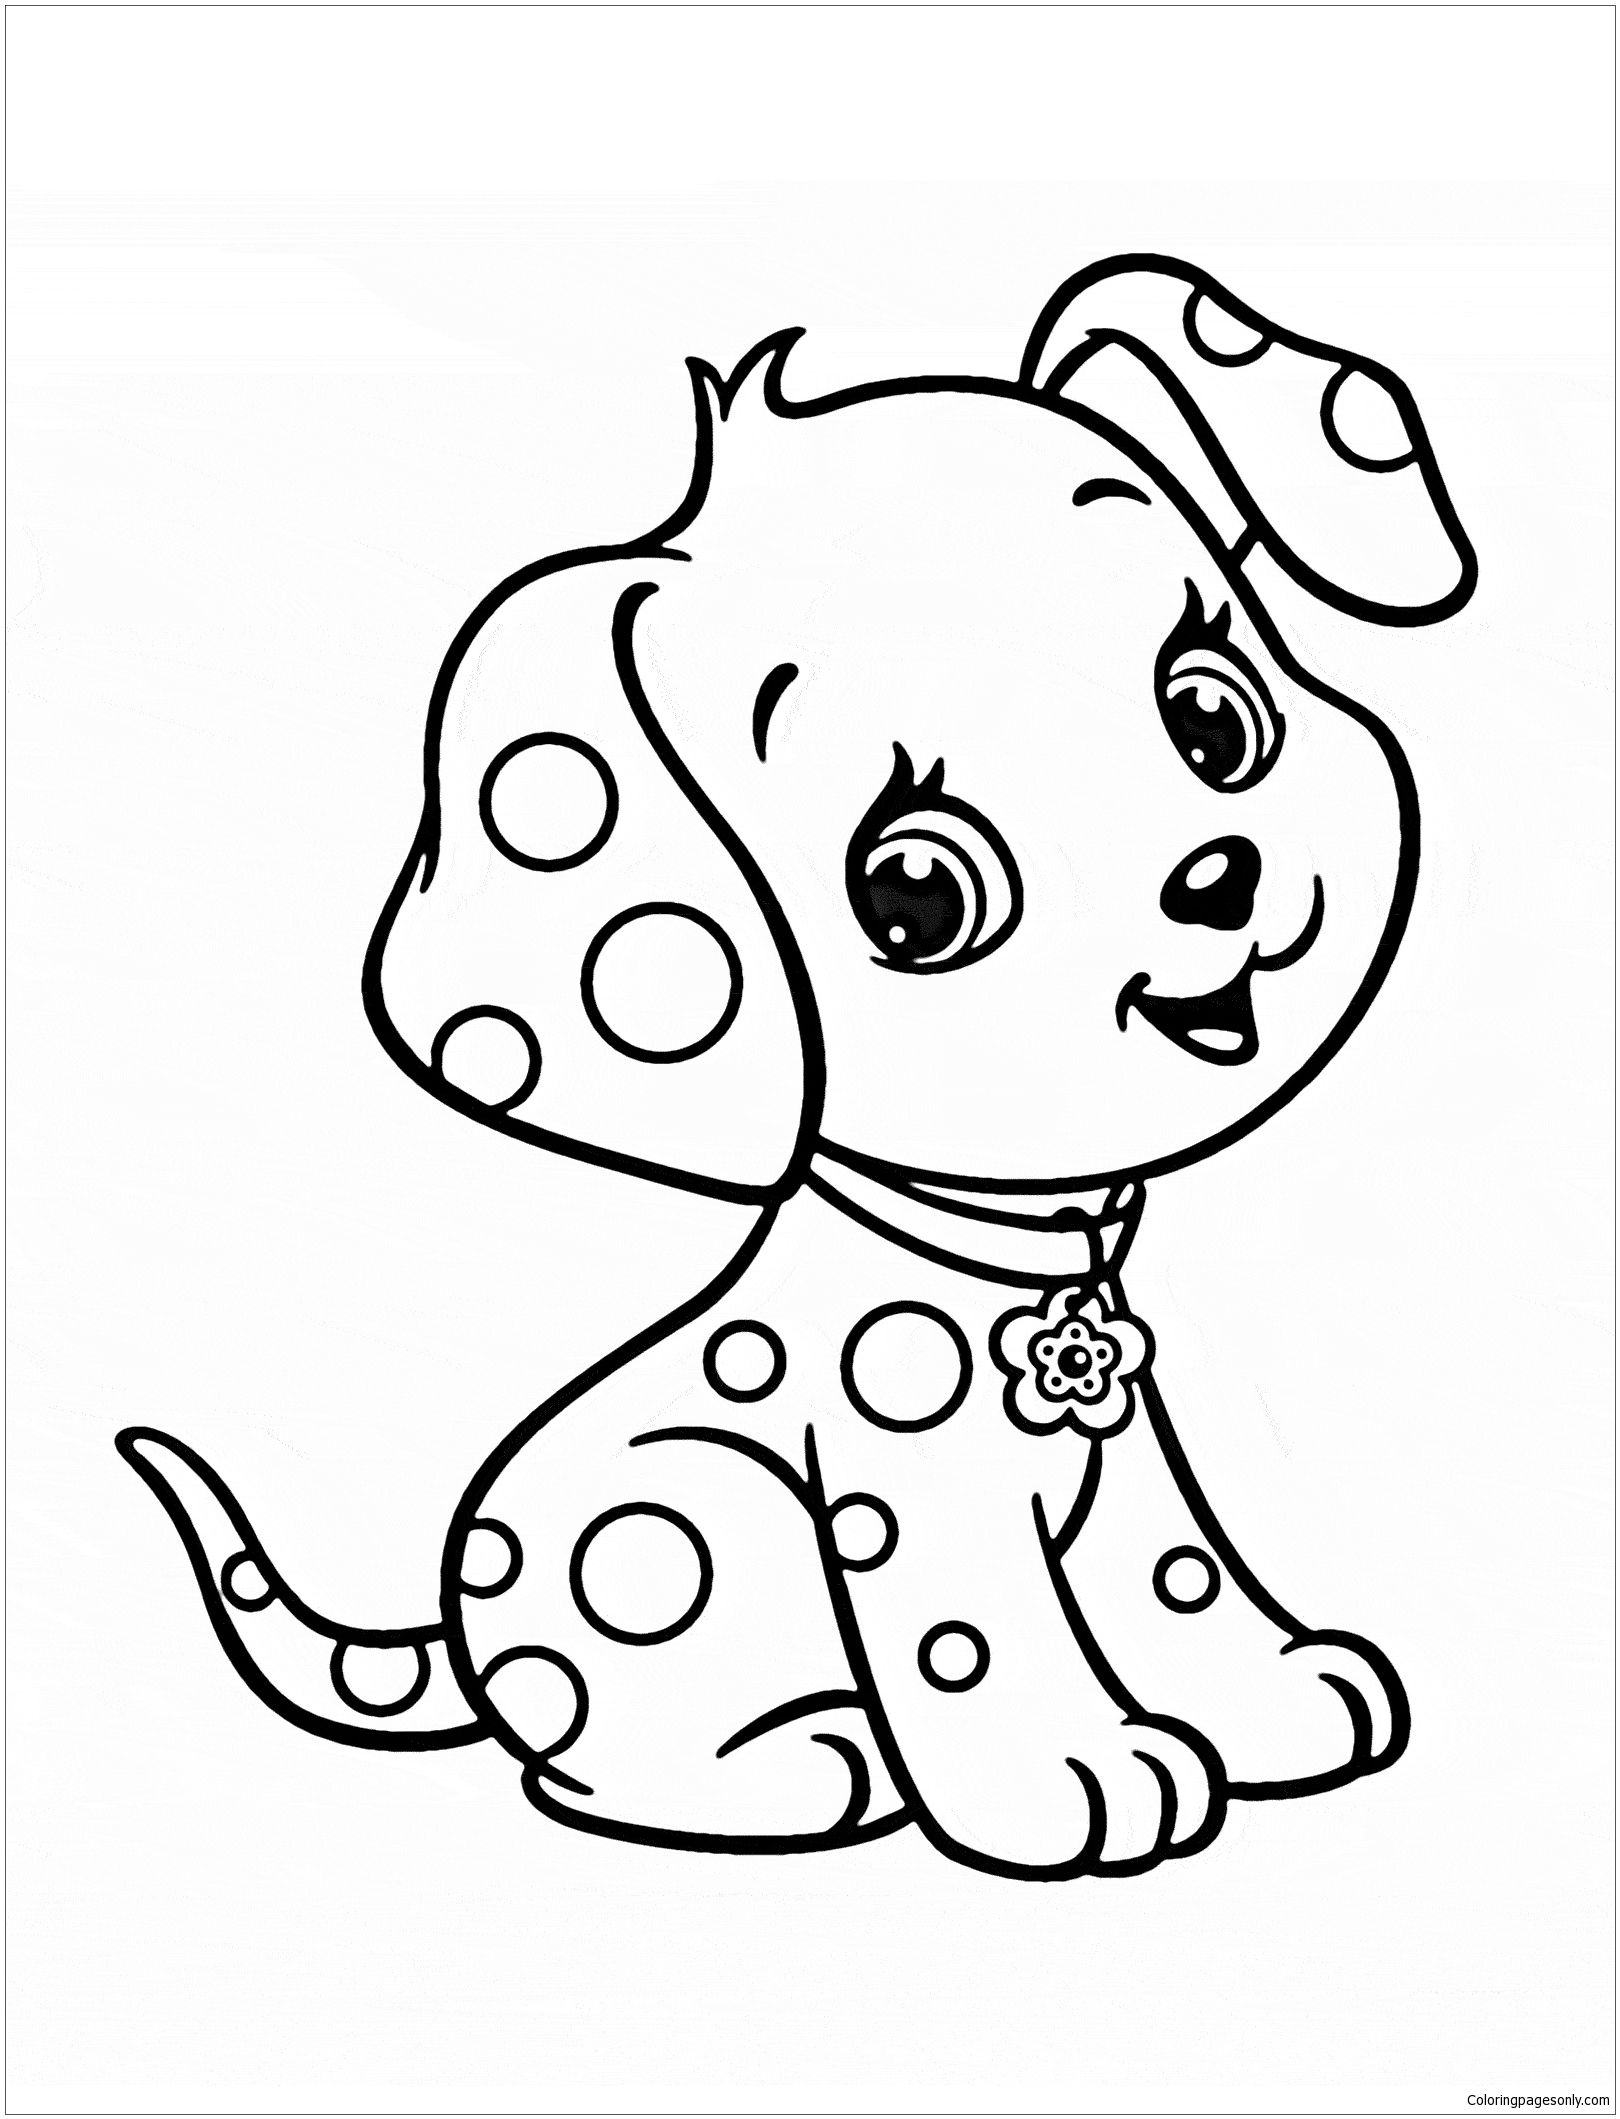 Cute Puppy 5 Coloring Page Puppy coloring pages, Dog